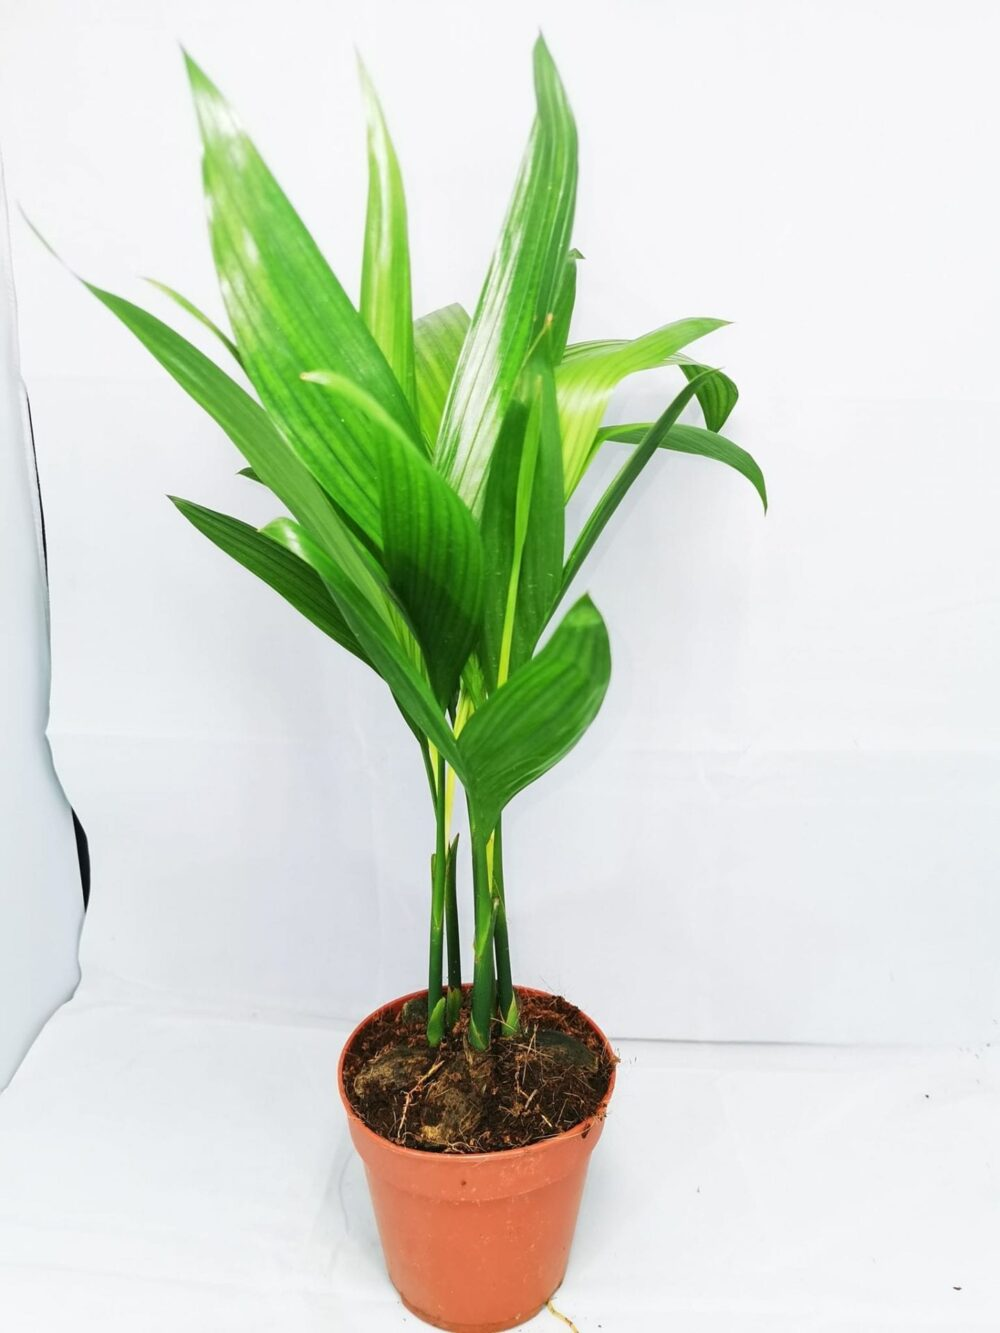 Dypsis lutescens Foliage